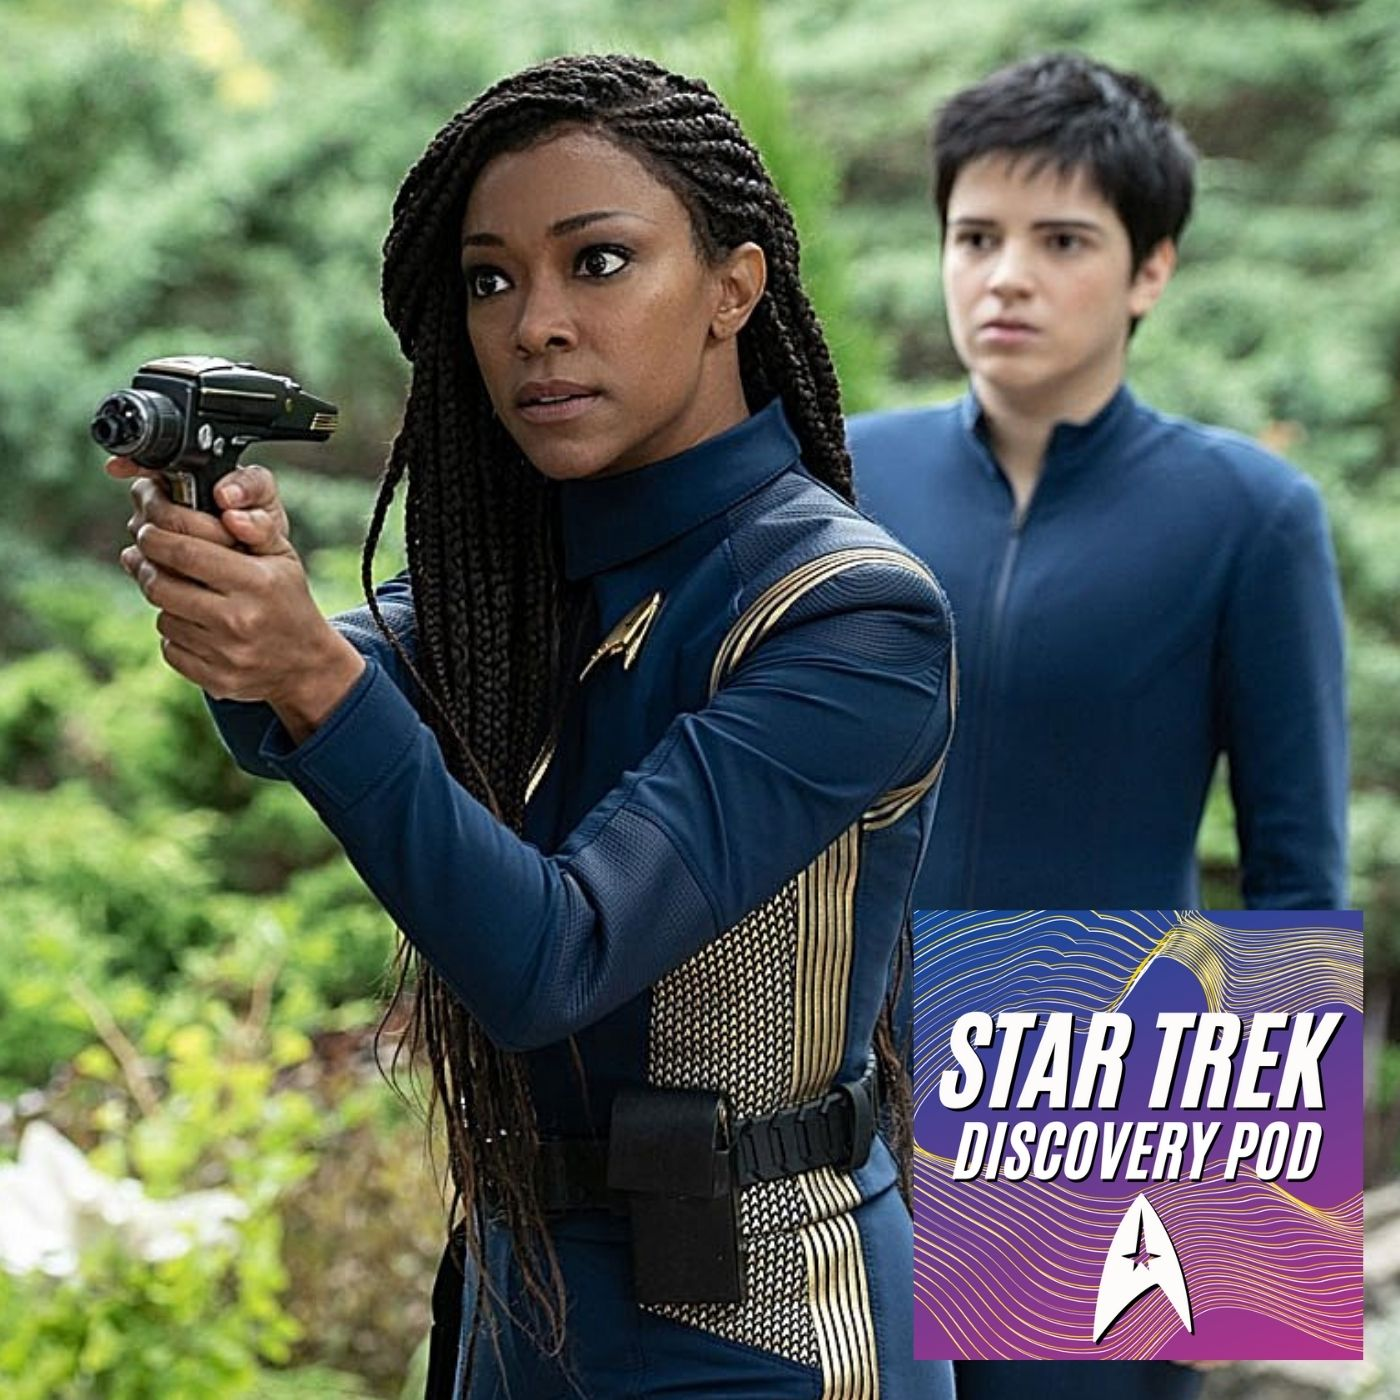 Star Trek Discovery Season 3 Episode 4 'Forget Me Not' Review